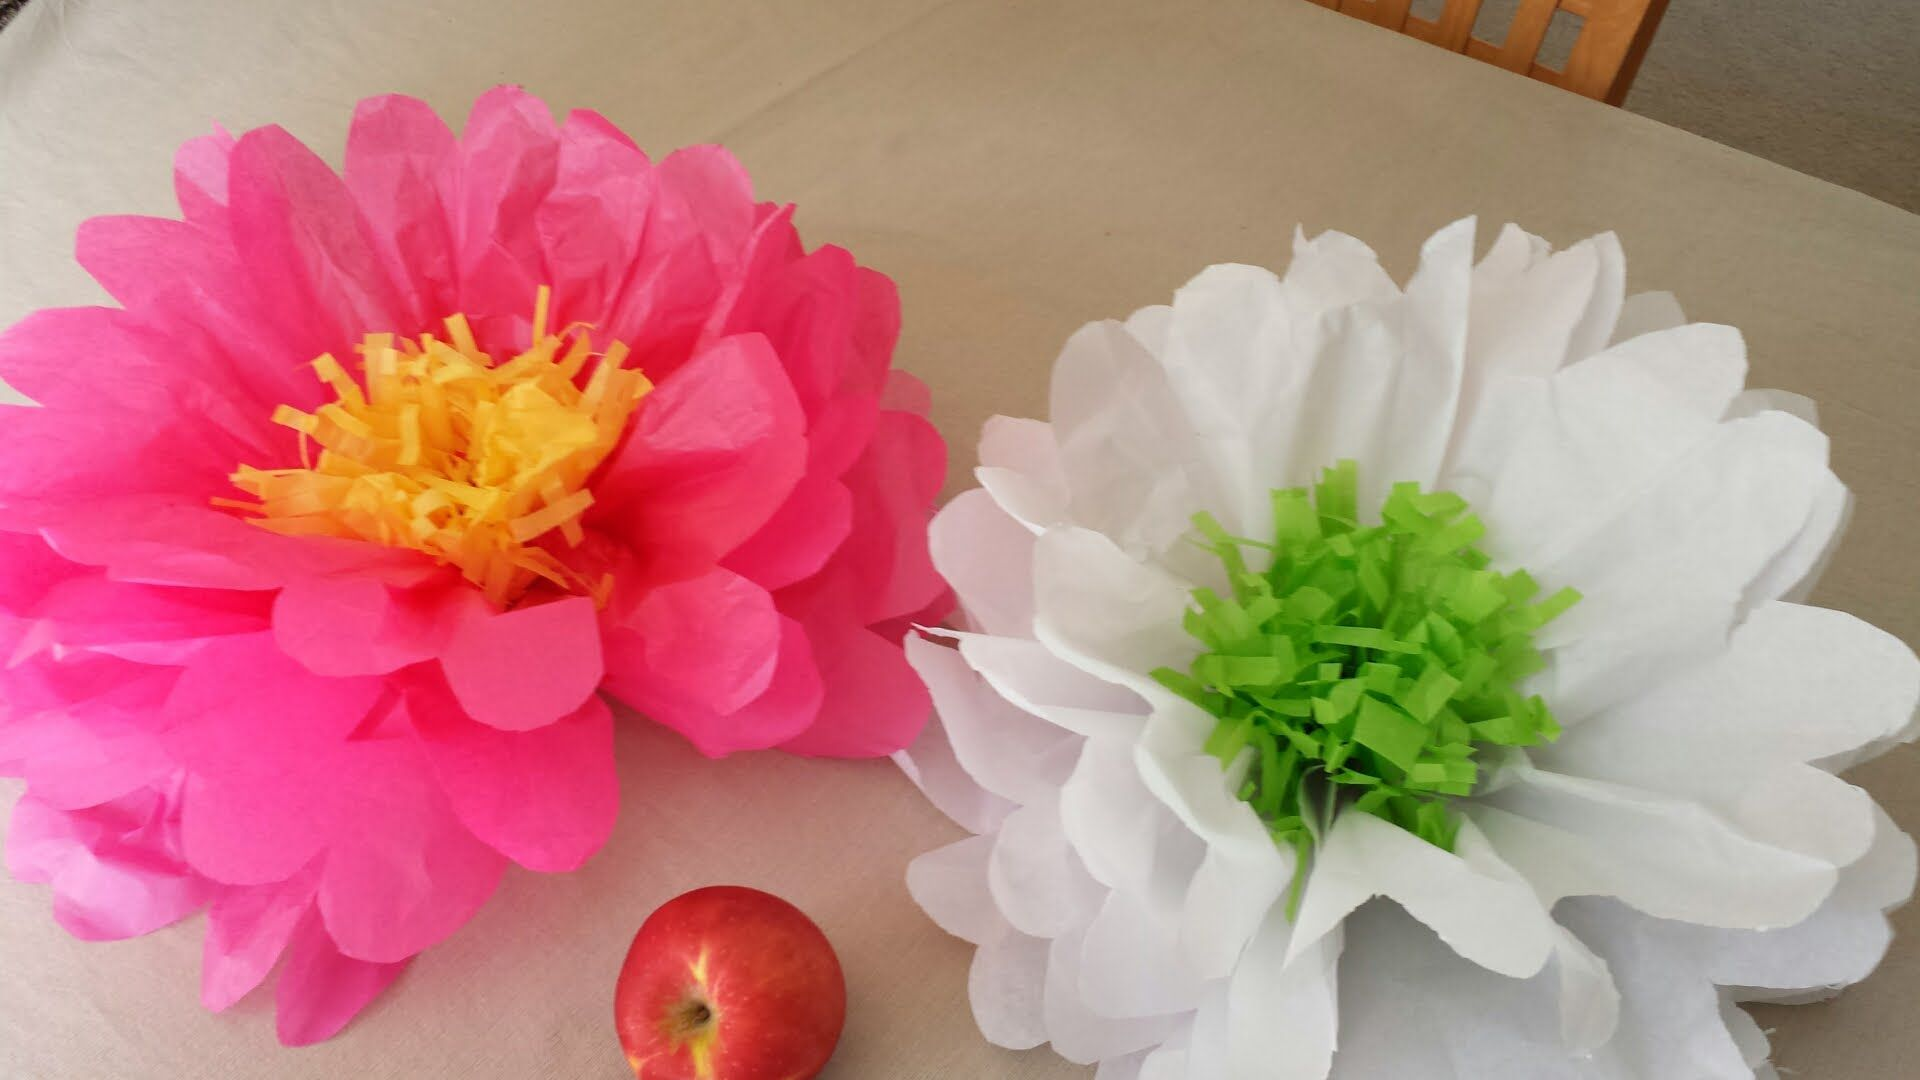 15 interesting crafts made with tissue paper diy crafts tissue paper flowers with shredded tissue centres izmirmasajfo